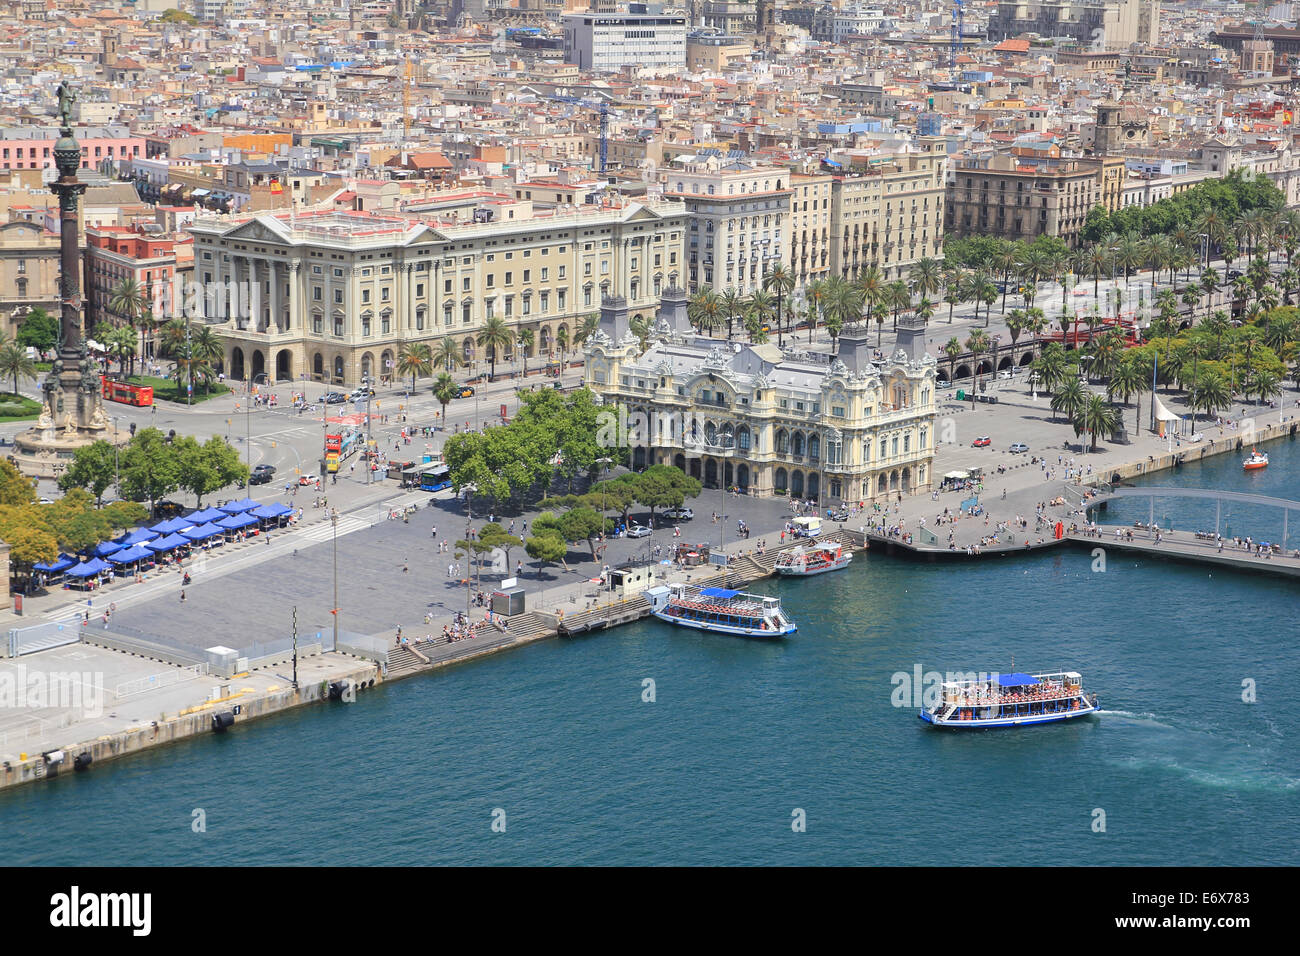 Aerial view of Port Vell (Old Port) of Barcelona. - Stock Image